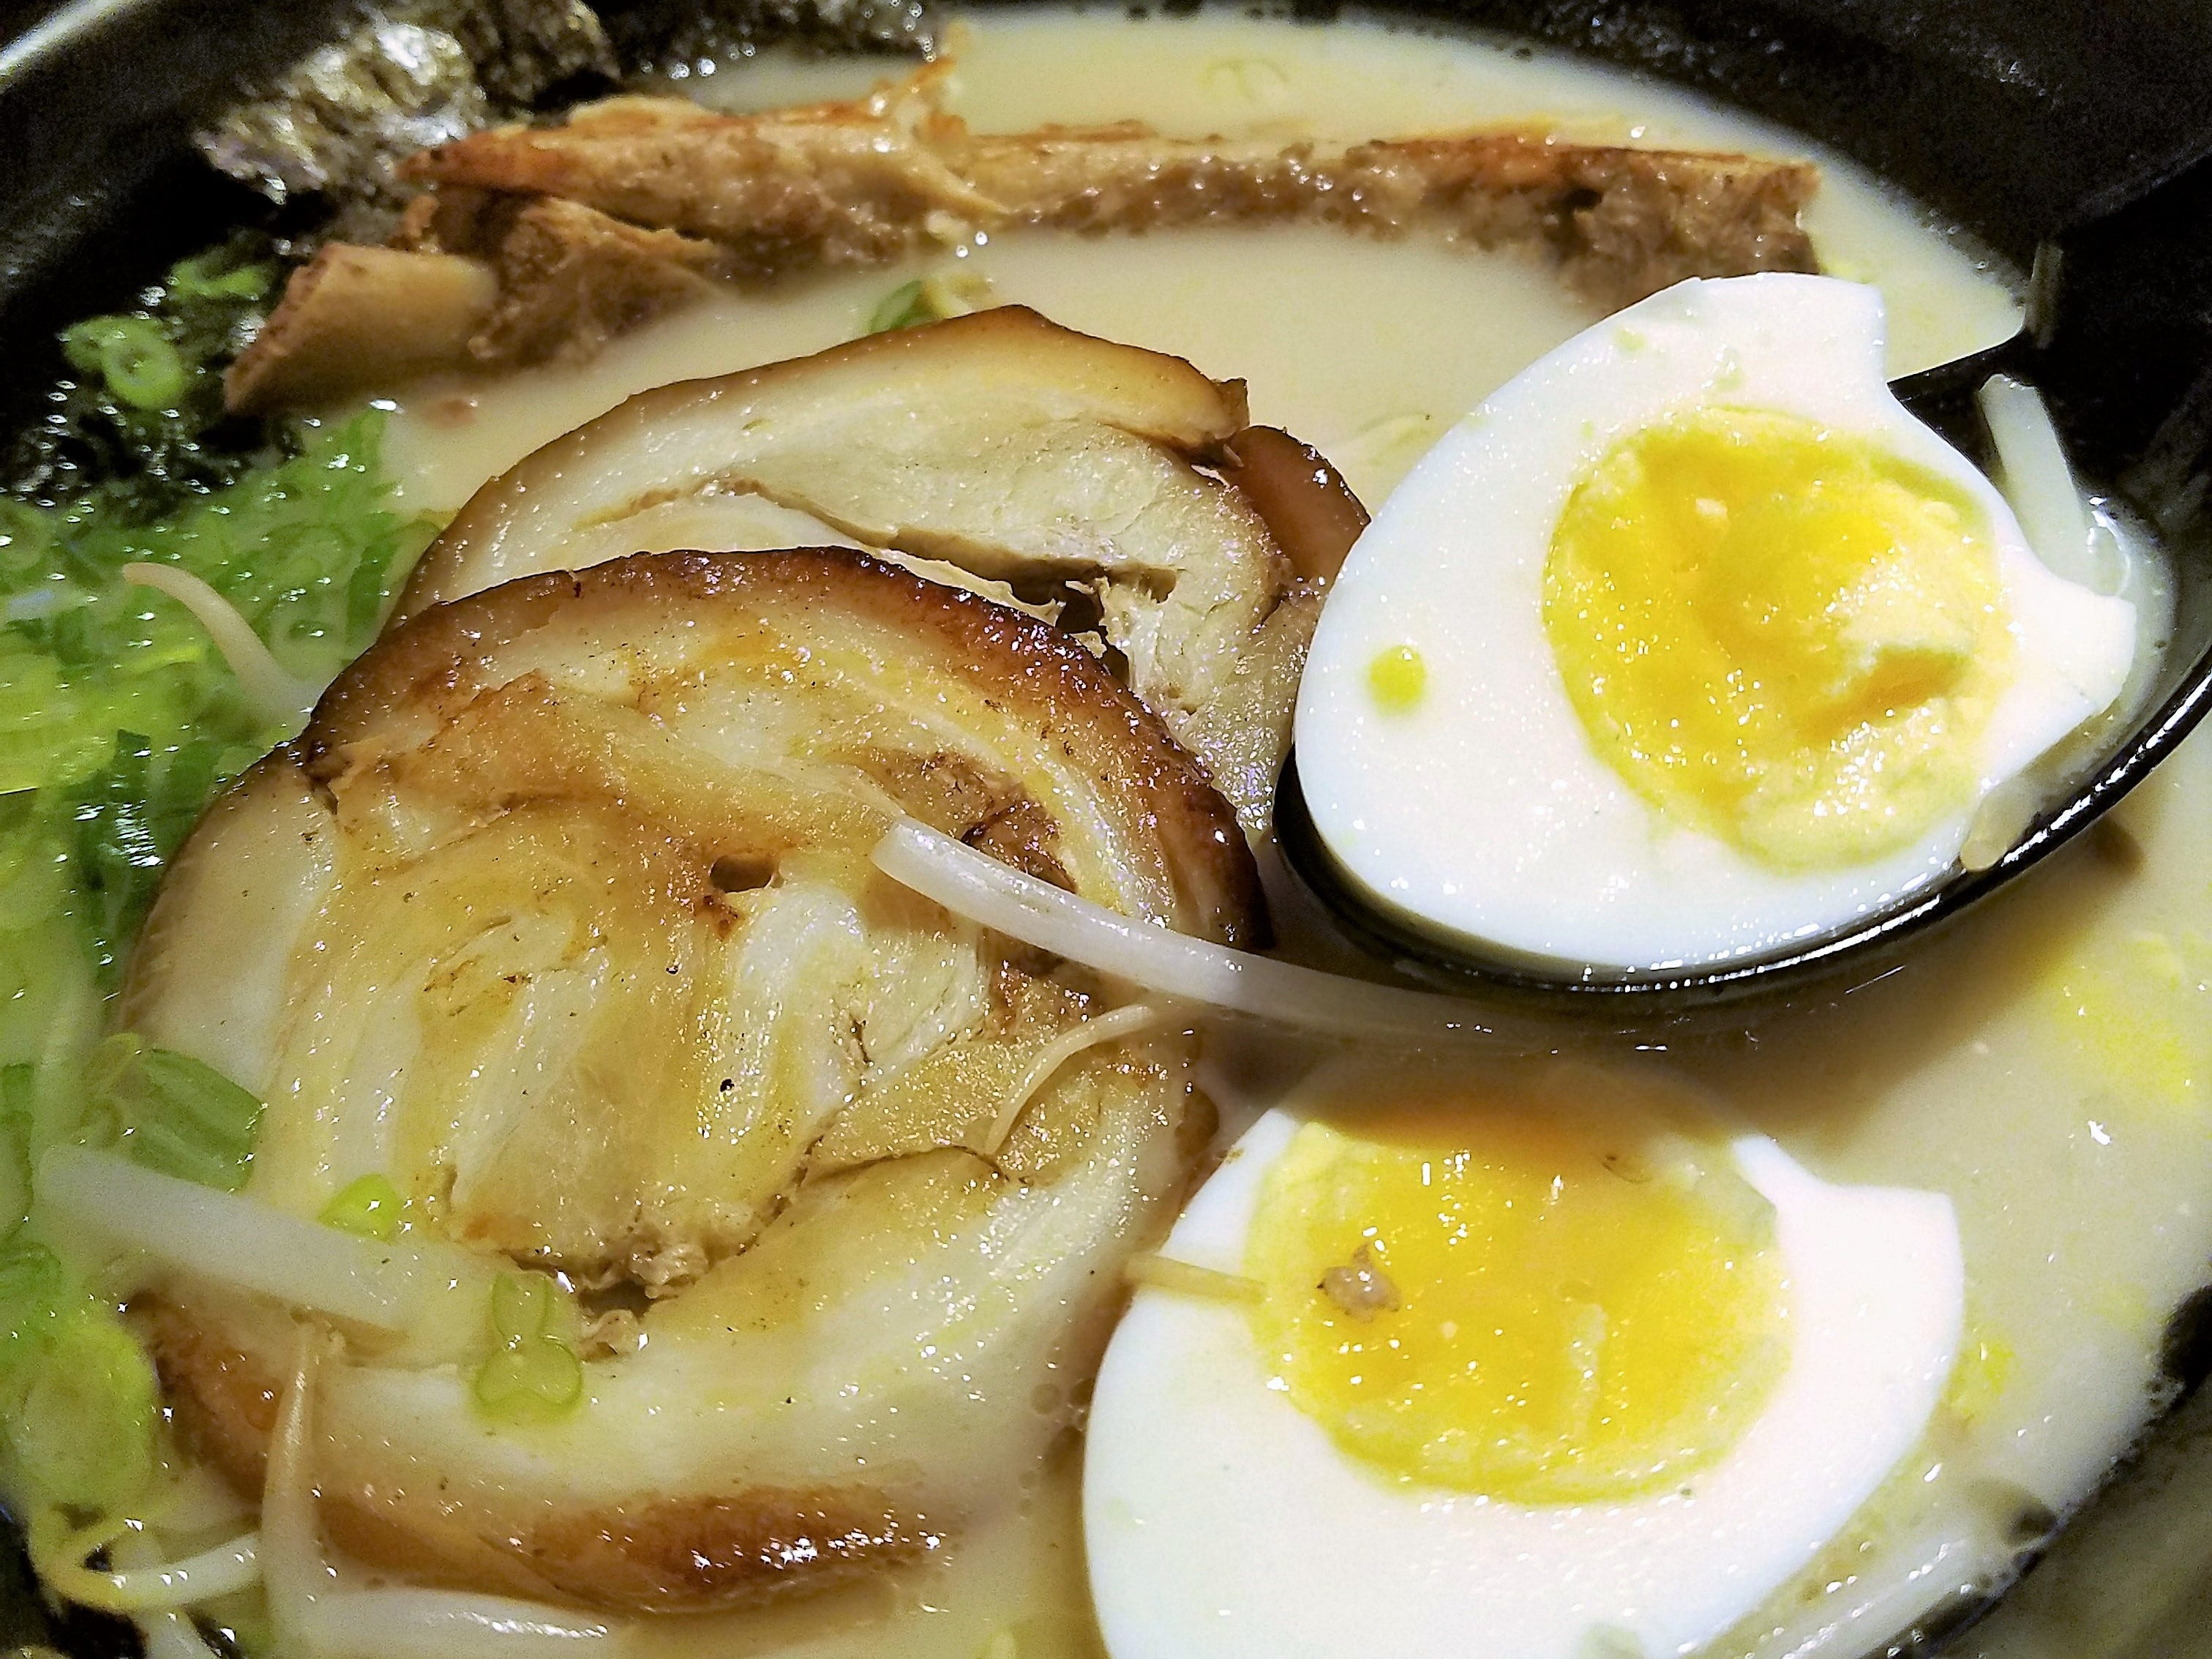 Tonkotsu ramen at Domo, topped with long-simmered pork stock, chashu pork belly, boiled egg, scallion, a pork rib and crispy seaweed.